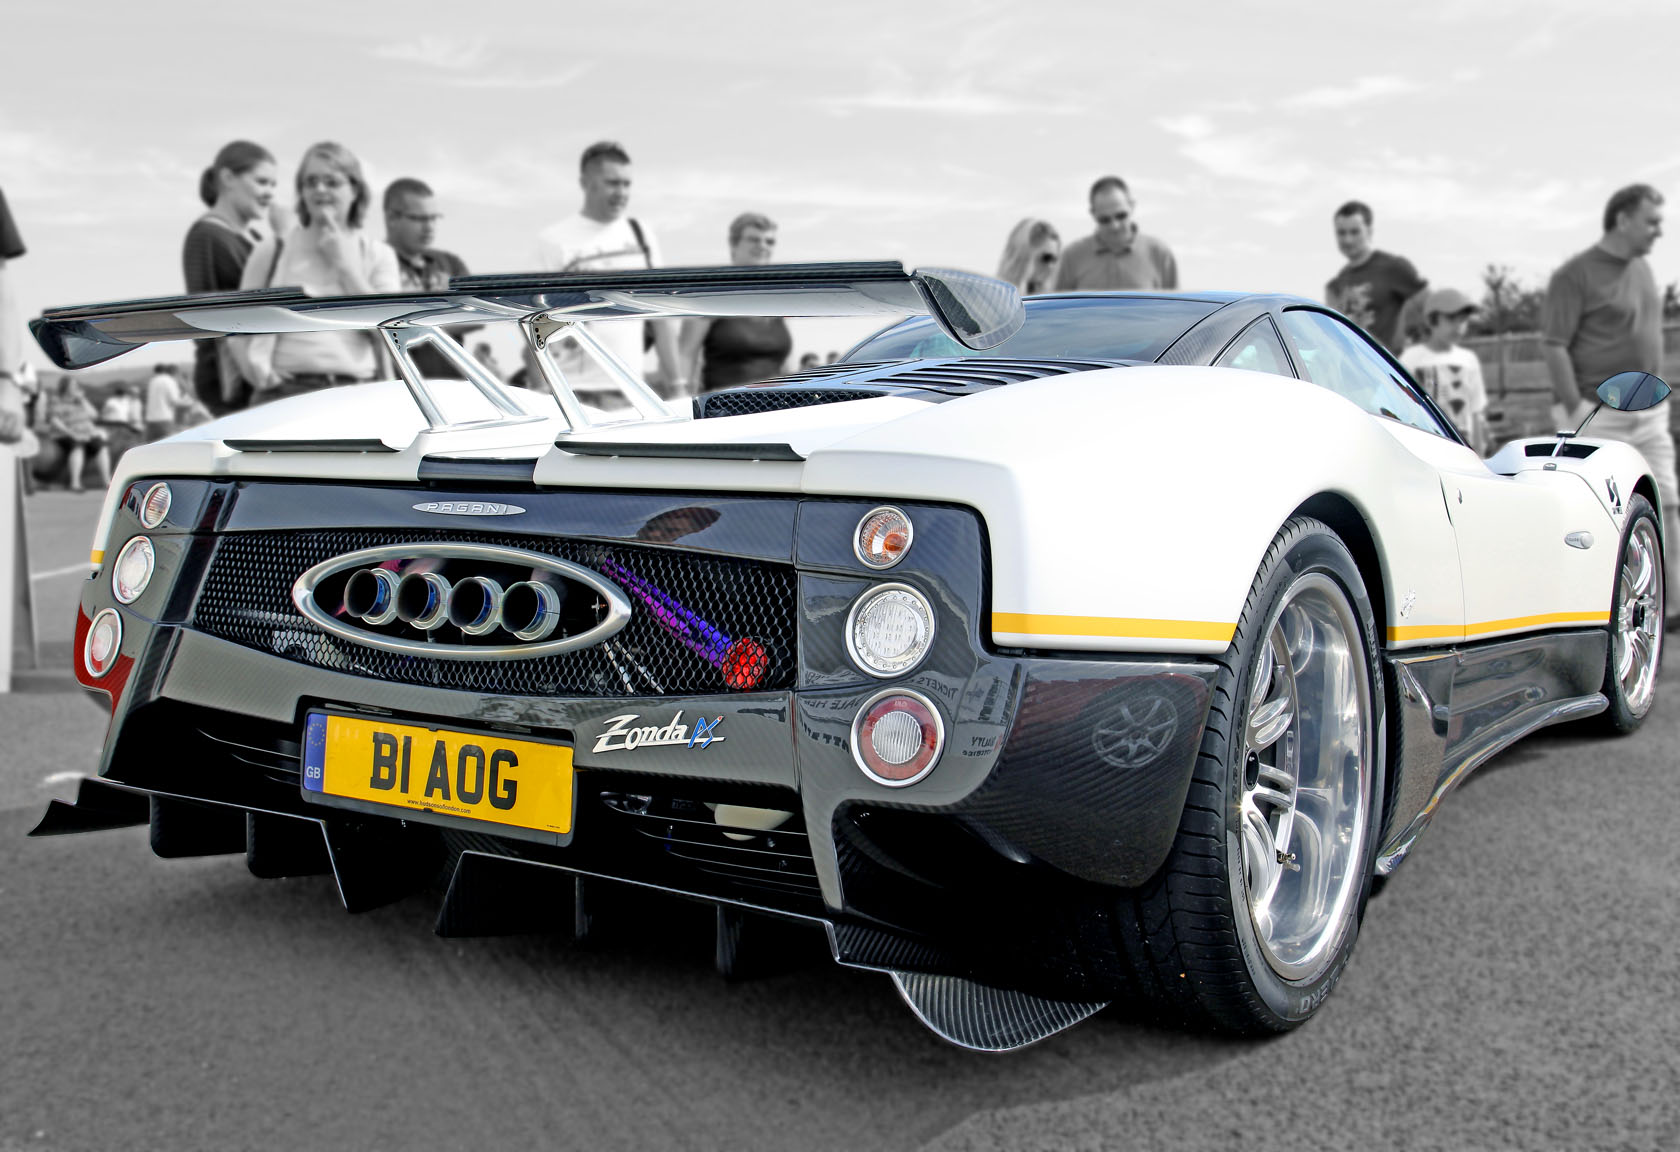 Nice File:Pagani Zonda PS Rear